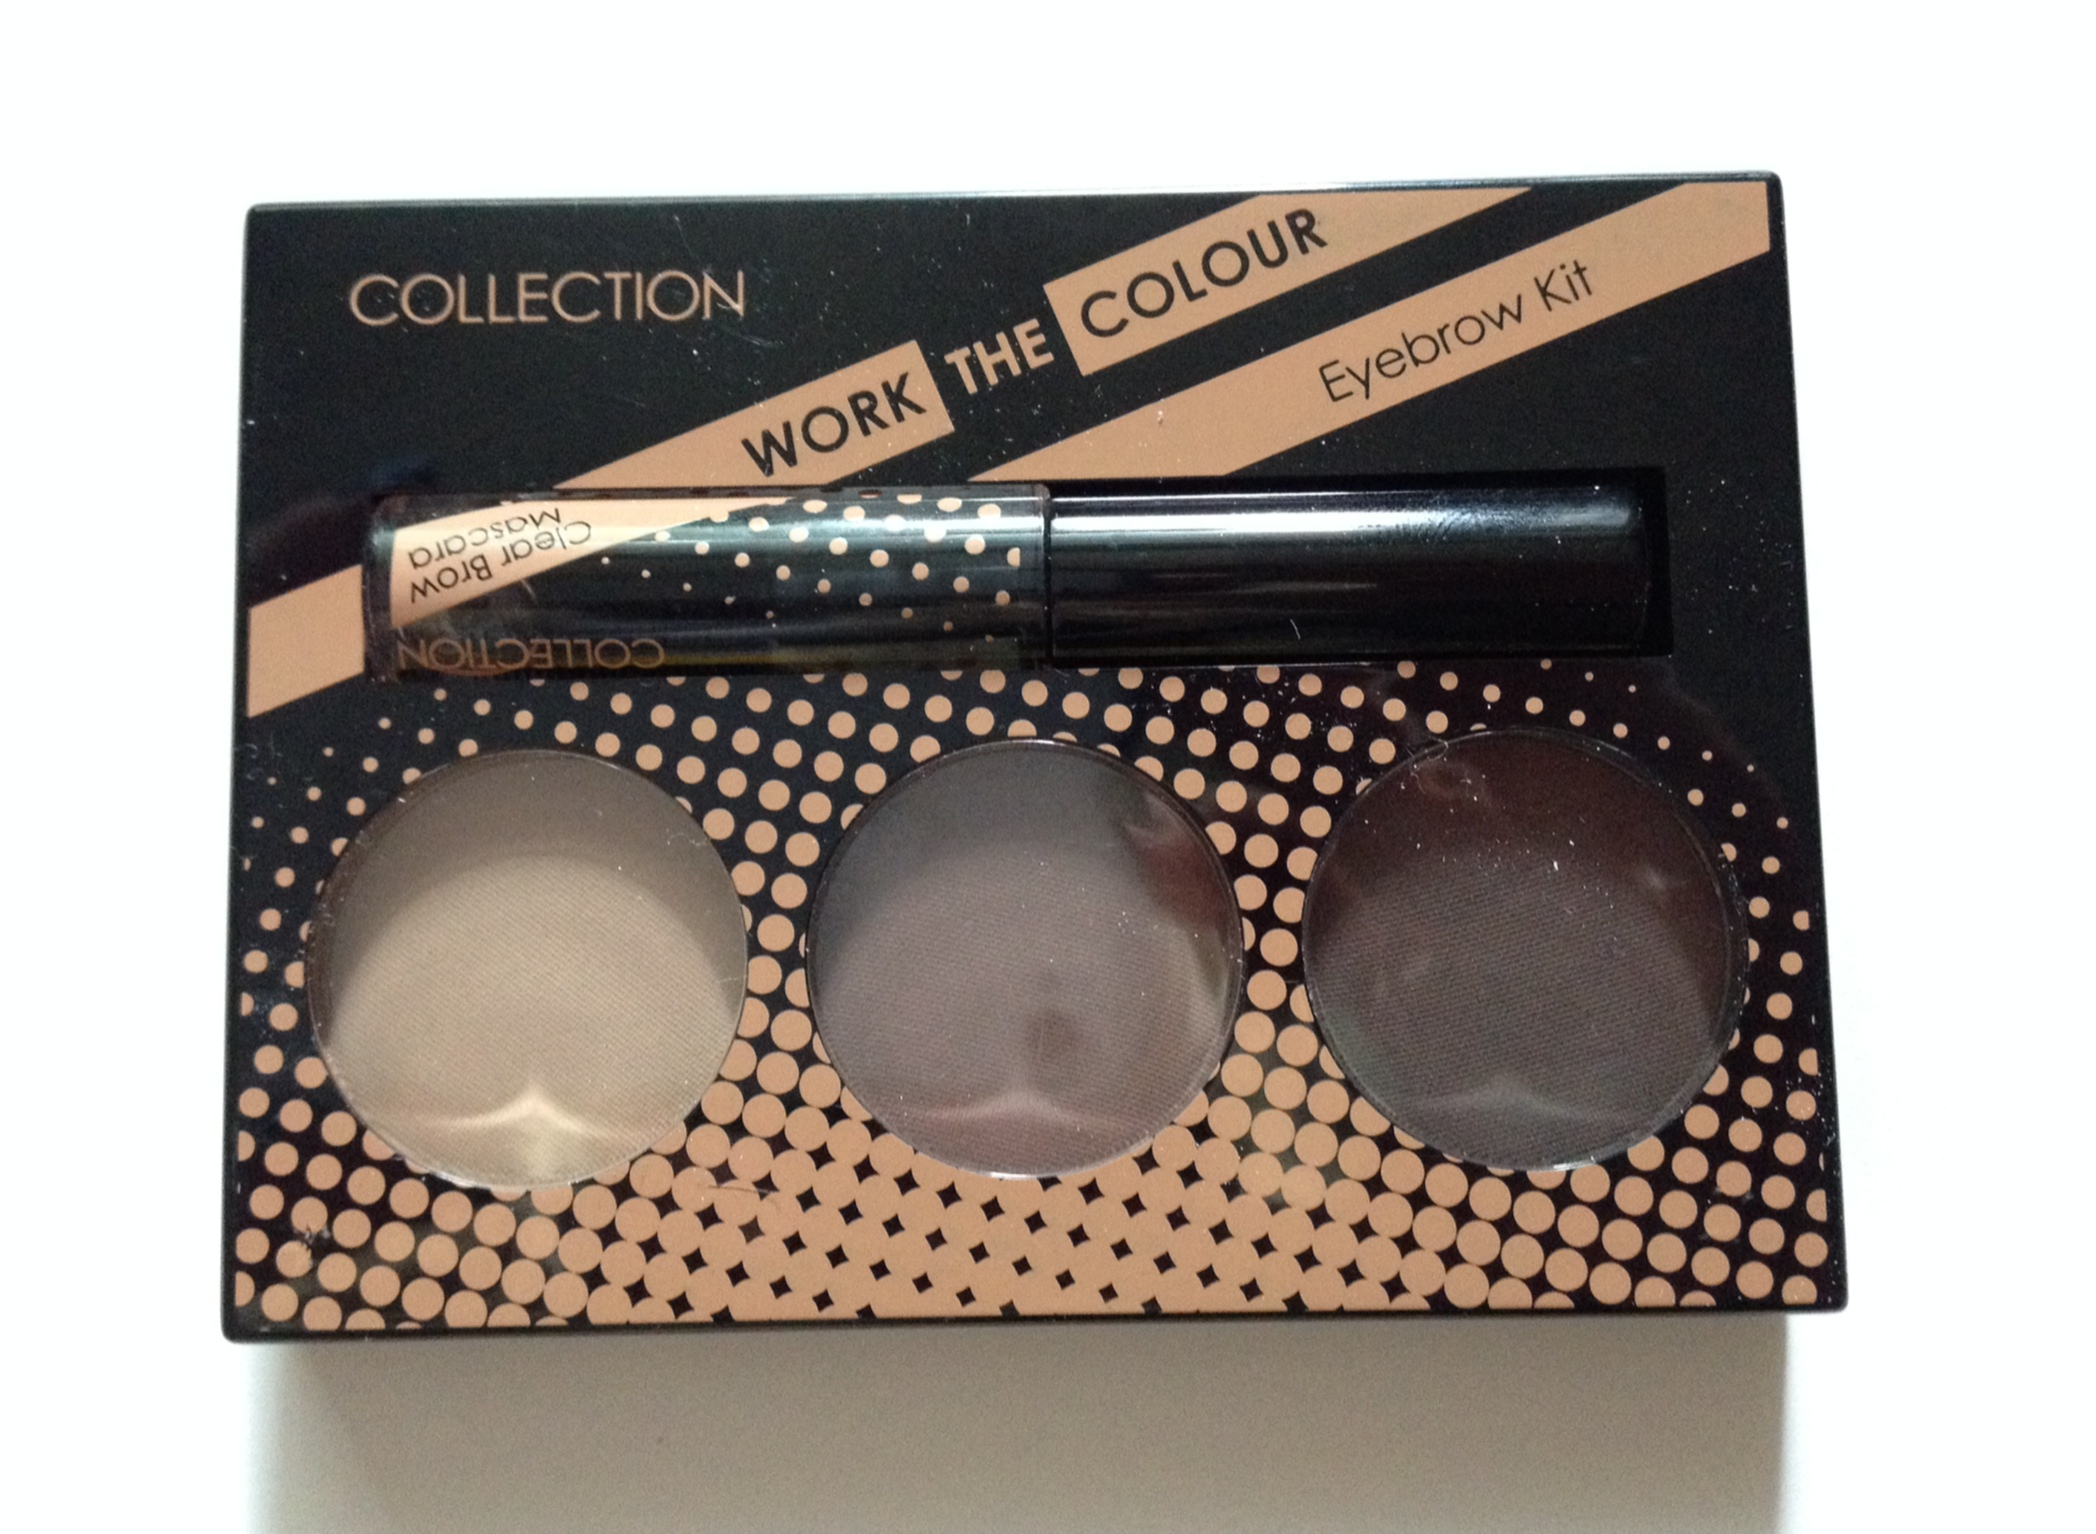 Collection Work The Colour Eyebrow Kit Rebecca Barnes